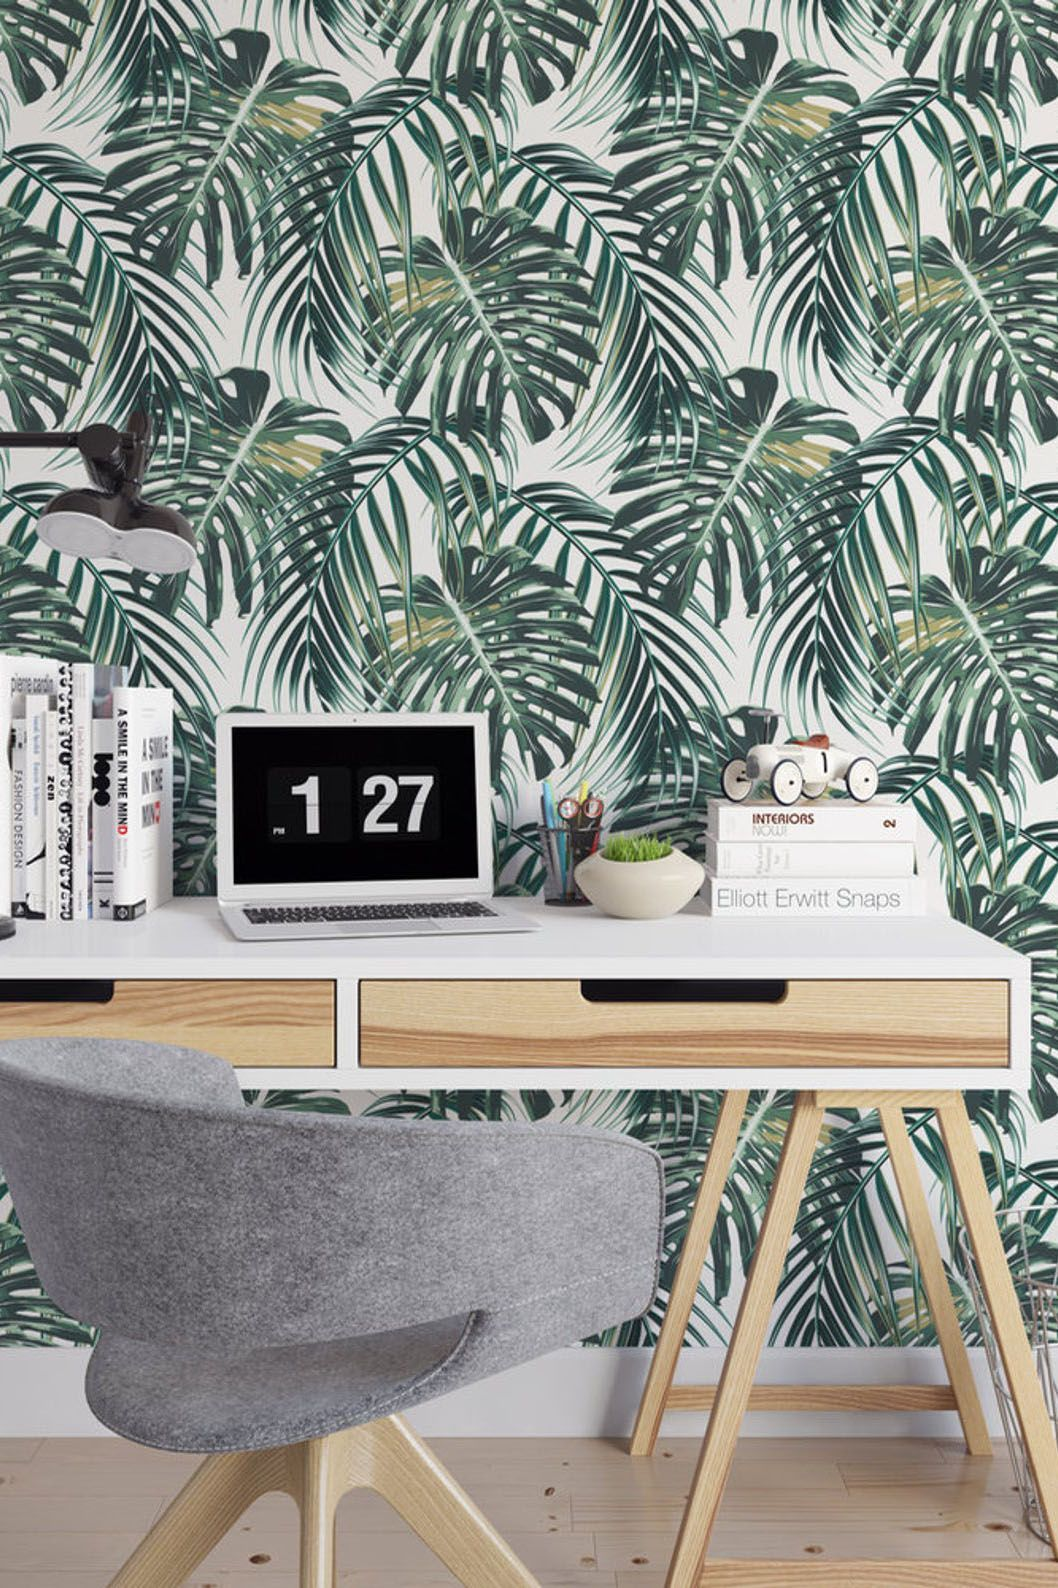 Beach Home Decor Spruce Up Your Work From Home Space Living Room Or Bathroom With Peel And Stick Wallpaper Removable Wallpaper Decor Peel And Stick Wallpaper